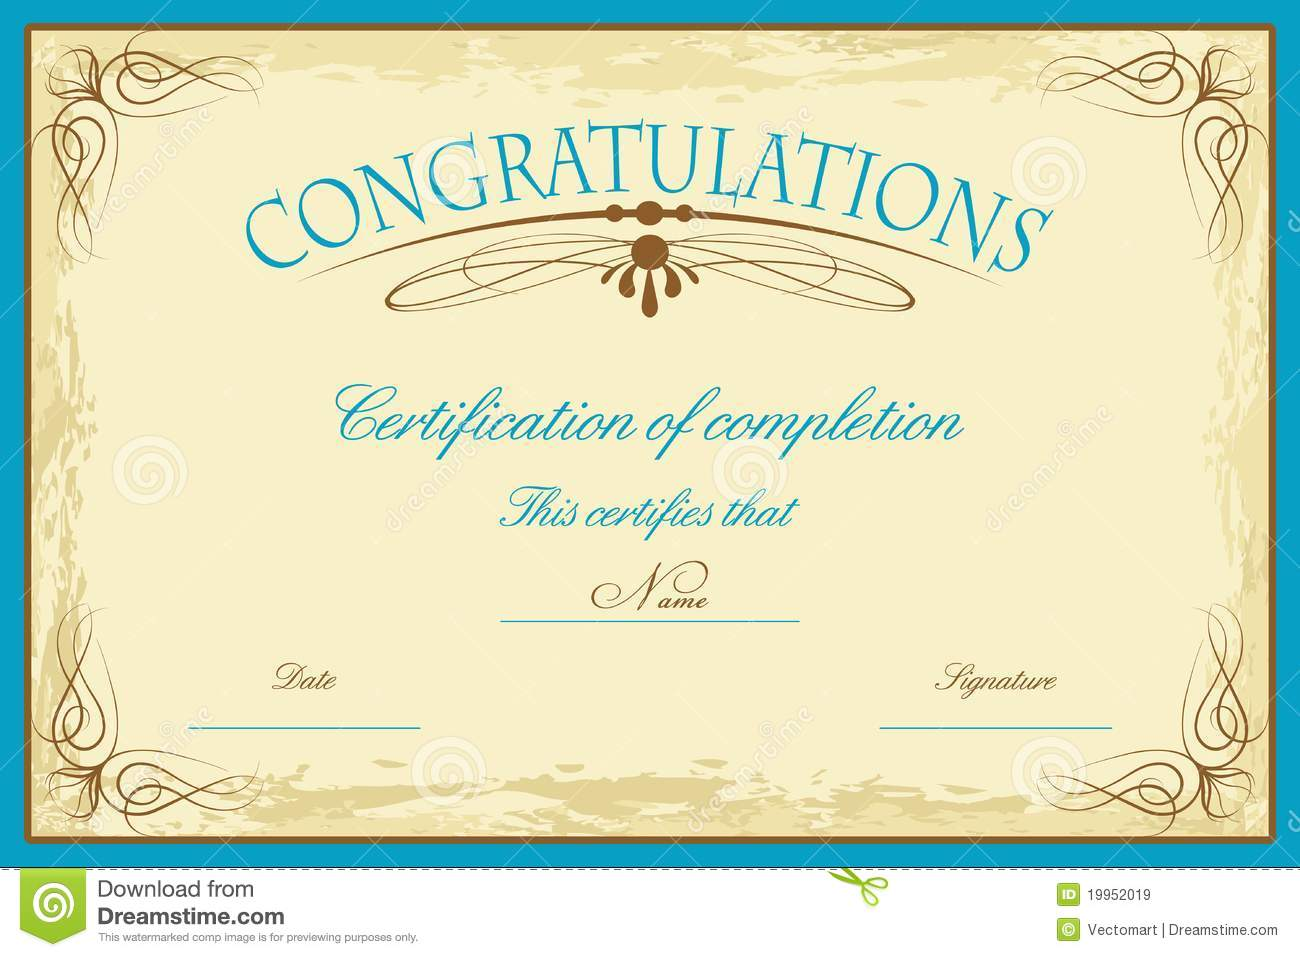 free online certificate templates certificate templates rich image and wallpaper